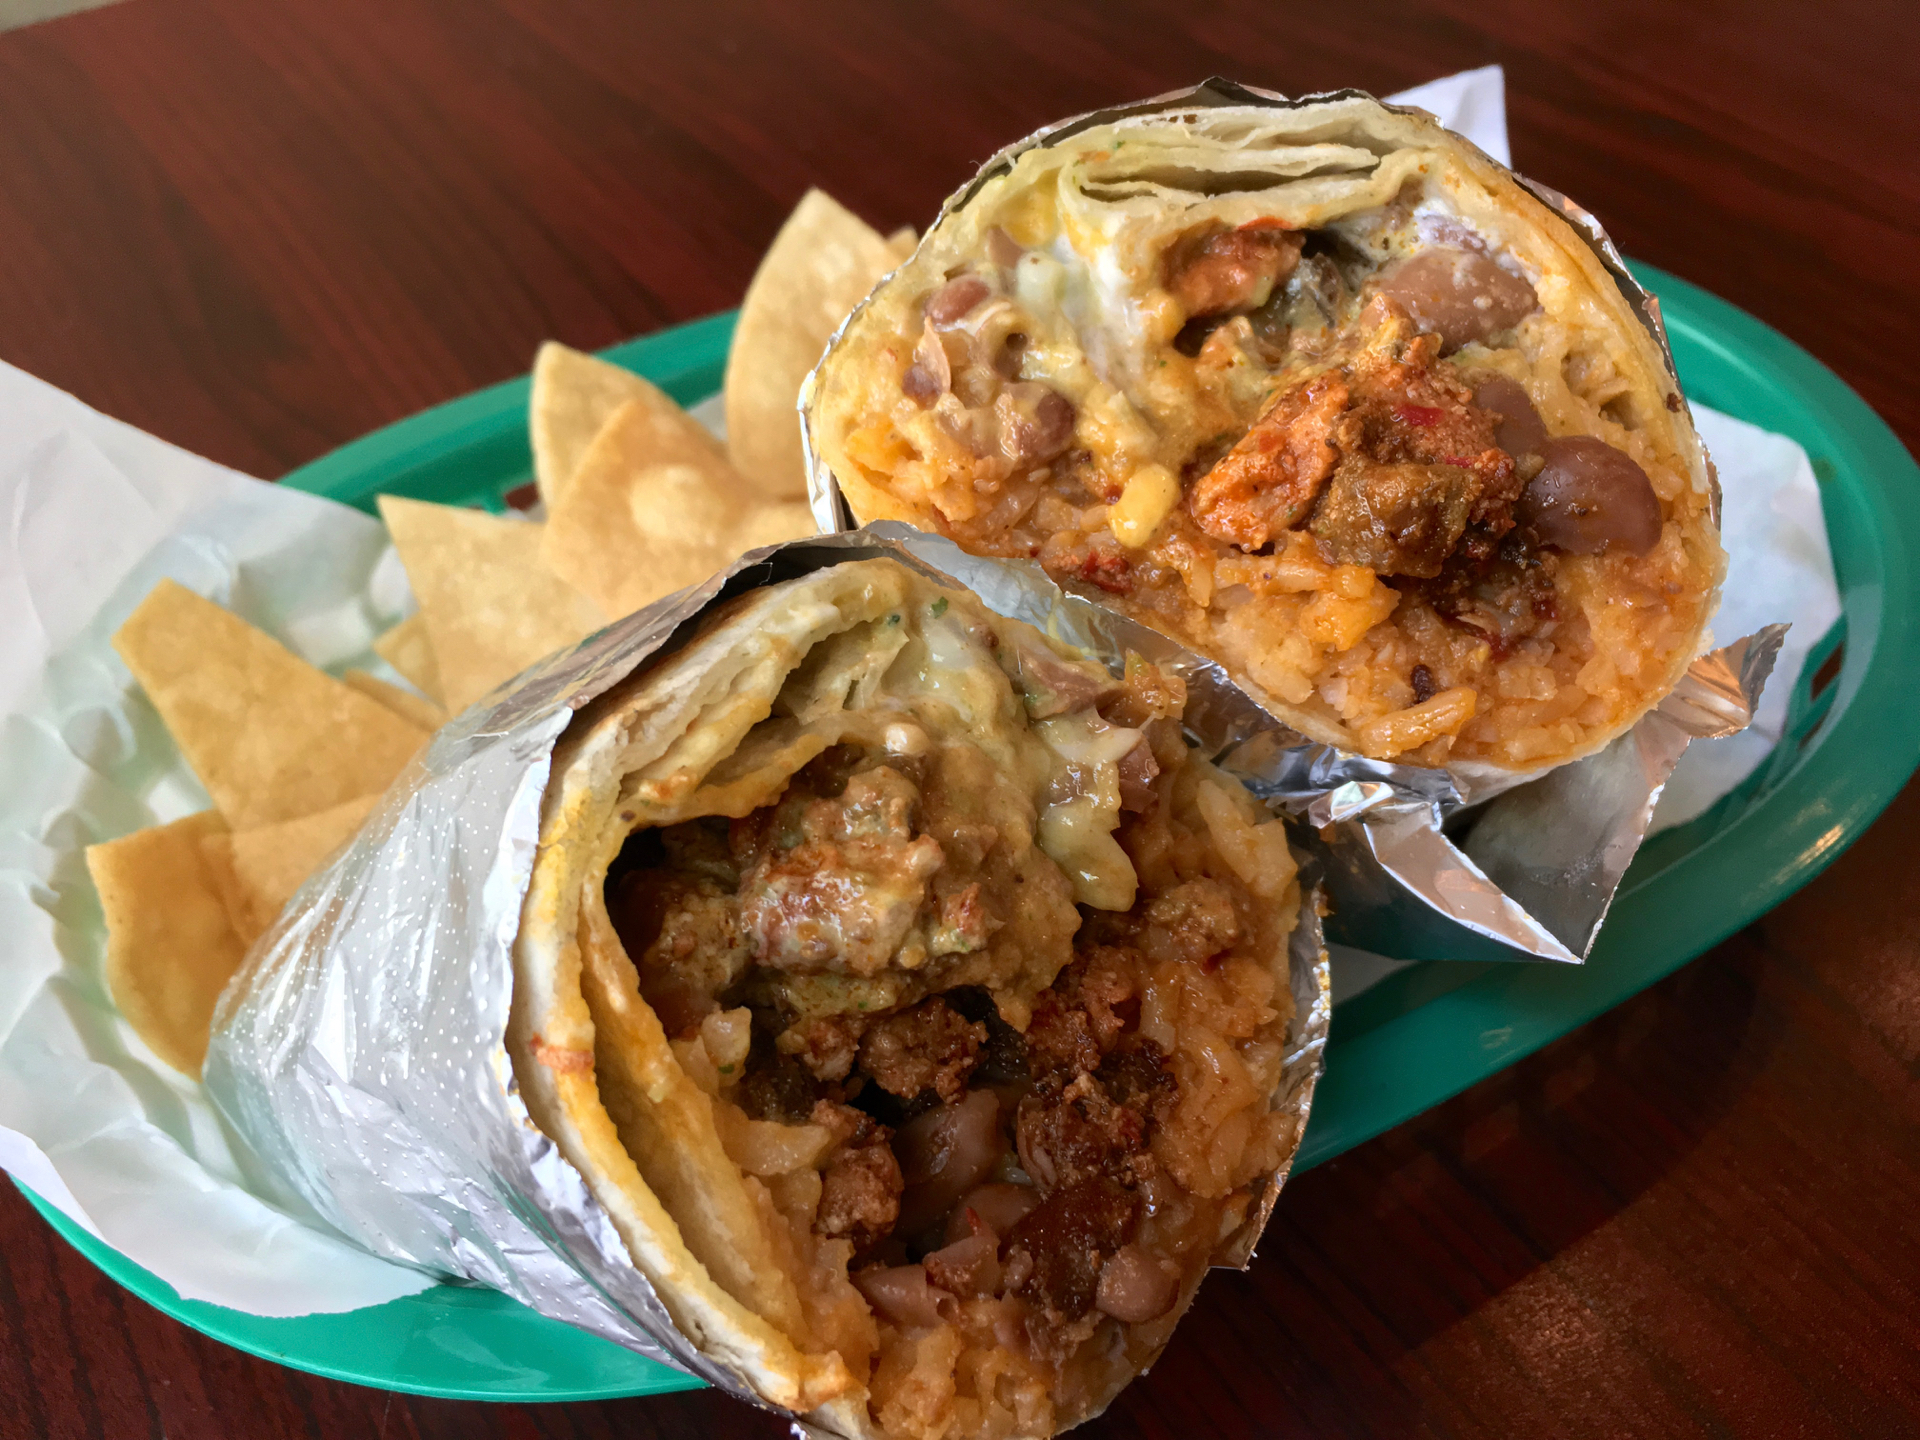 A super burrito with al pastor at Angelou's Mexican Grill.